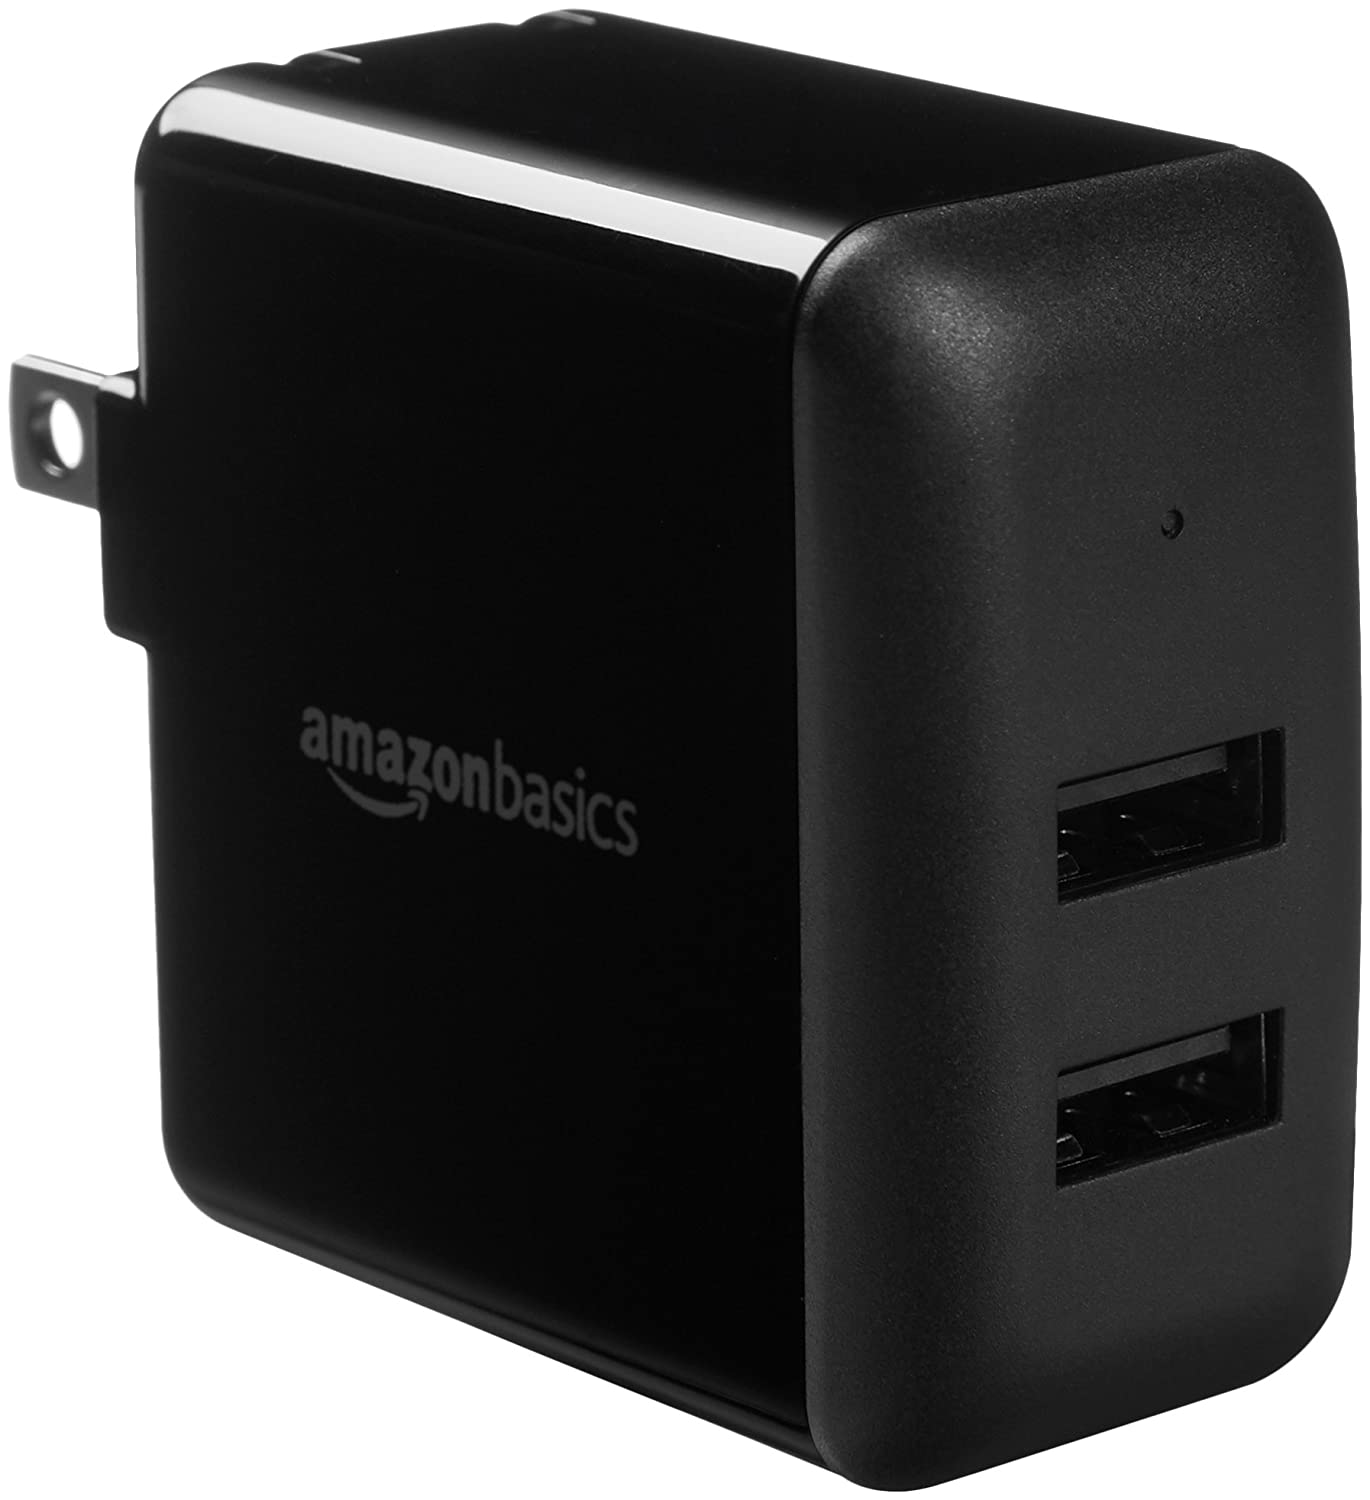 AmazonBasics Dual-Port USB Wall Charger (2.4 Amp) - Black